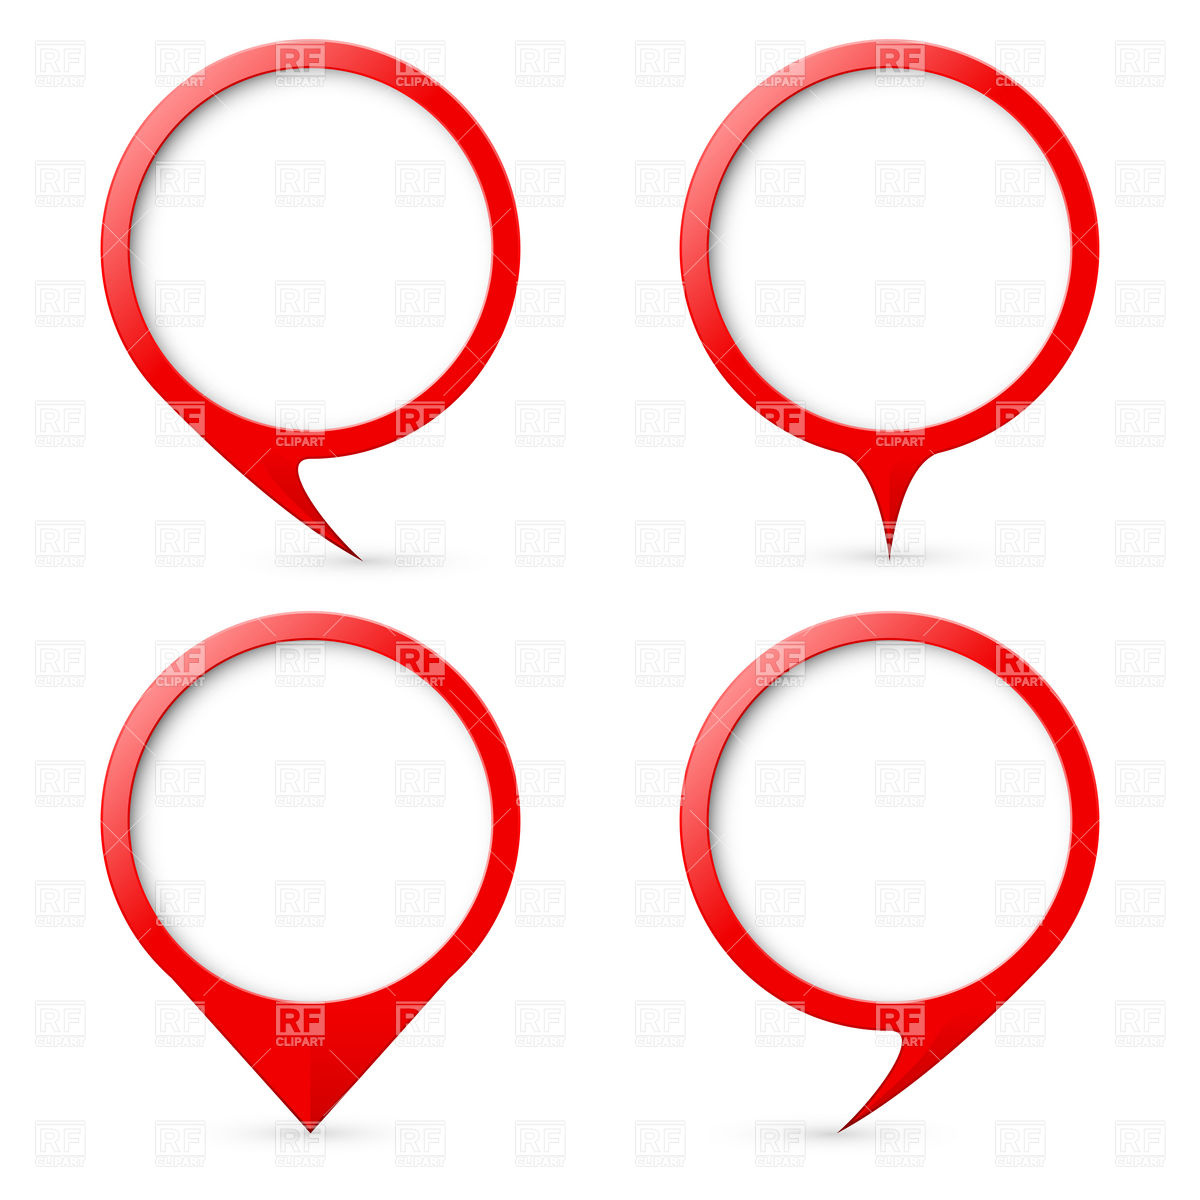 Red round map markers and pointers Vector Image #9543.